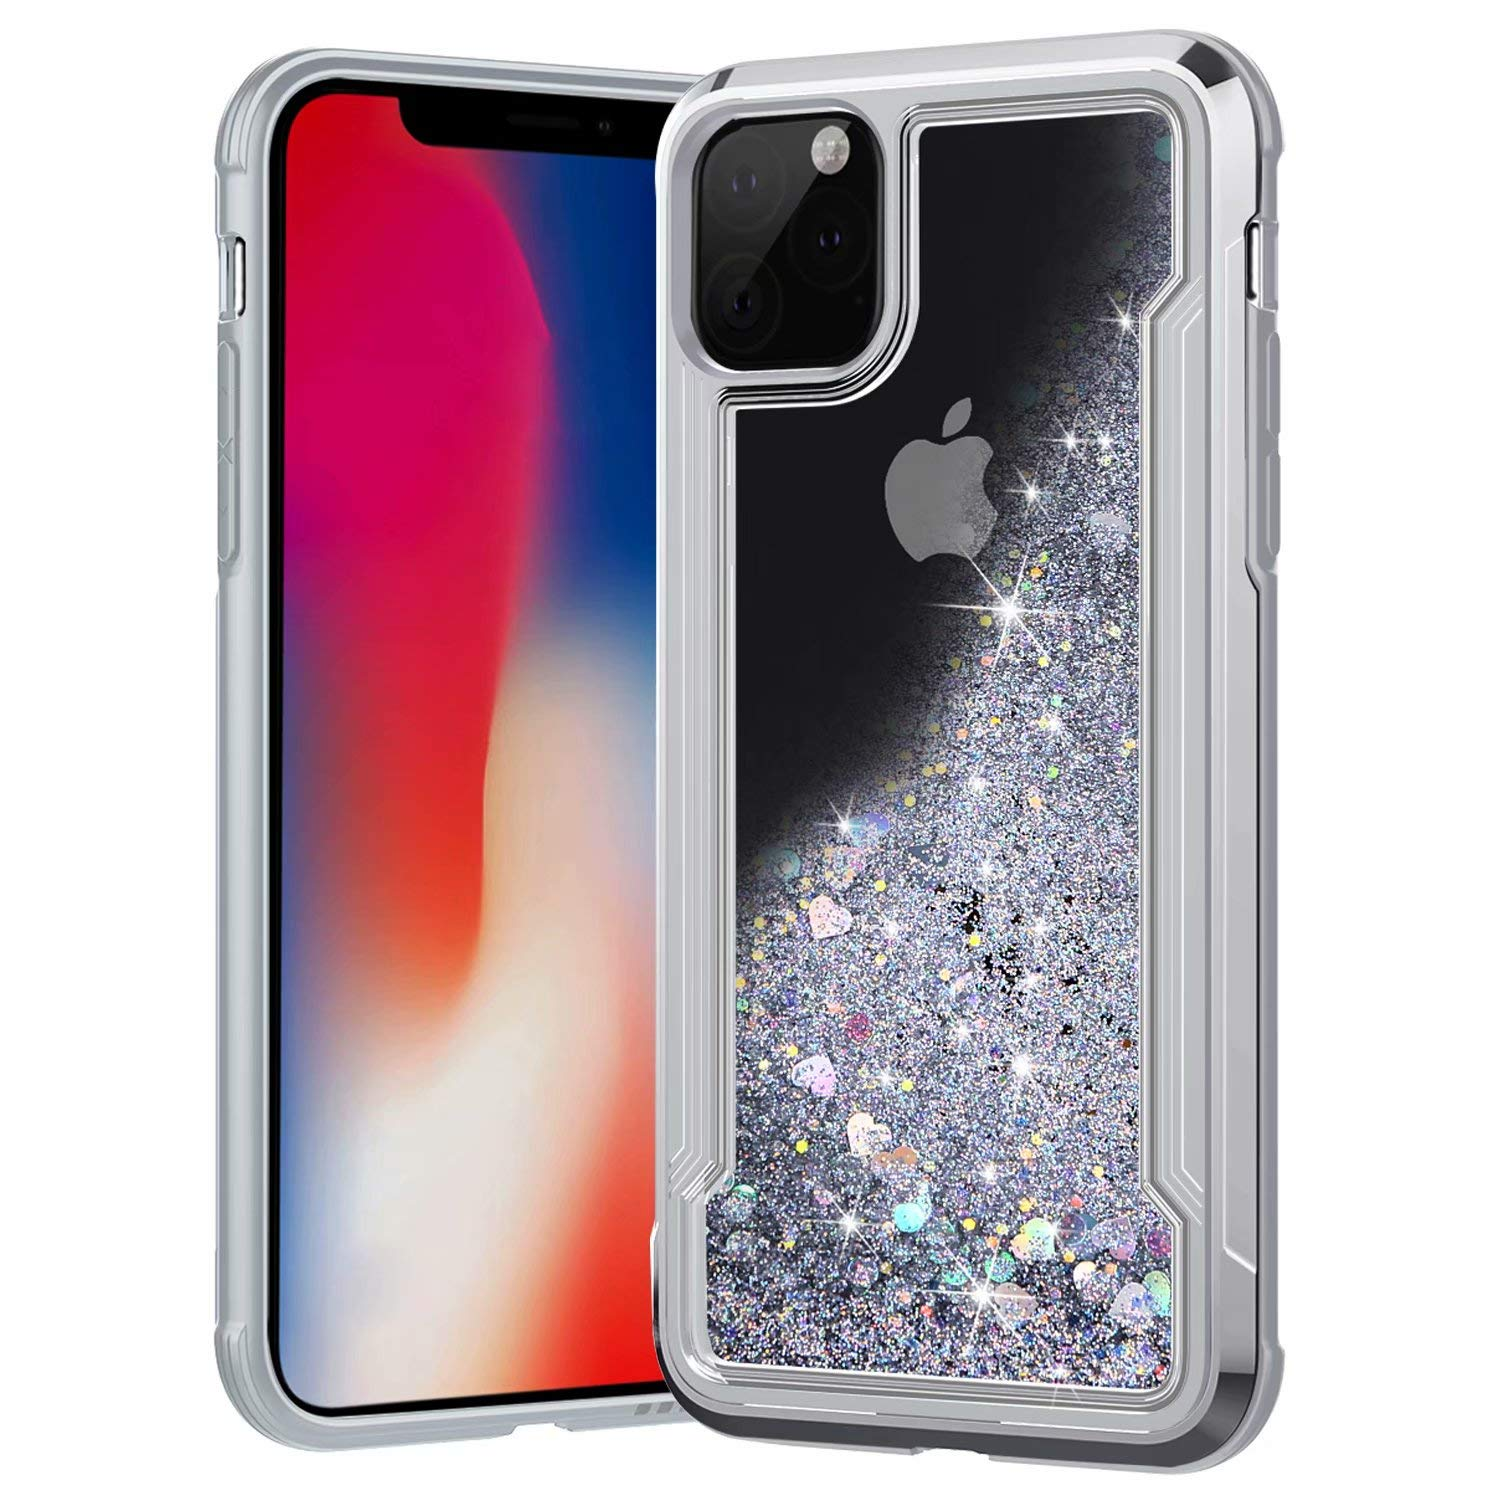 iPhone 11 Case, Ranyi Slim Protective Liquid Glitter Case Flowing Liquid Floating Glitter Sparkle Quicksand Resilient Rubber Electroplated Bumper Case for Apple 2019 6.1 Inch iPhone 11 (Silver) by Ranyi